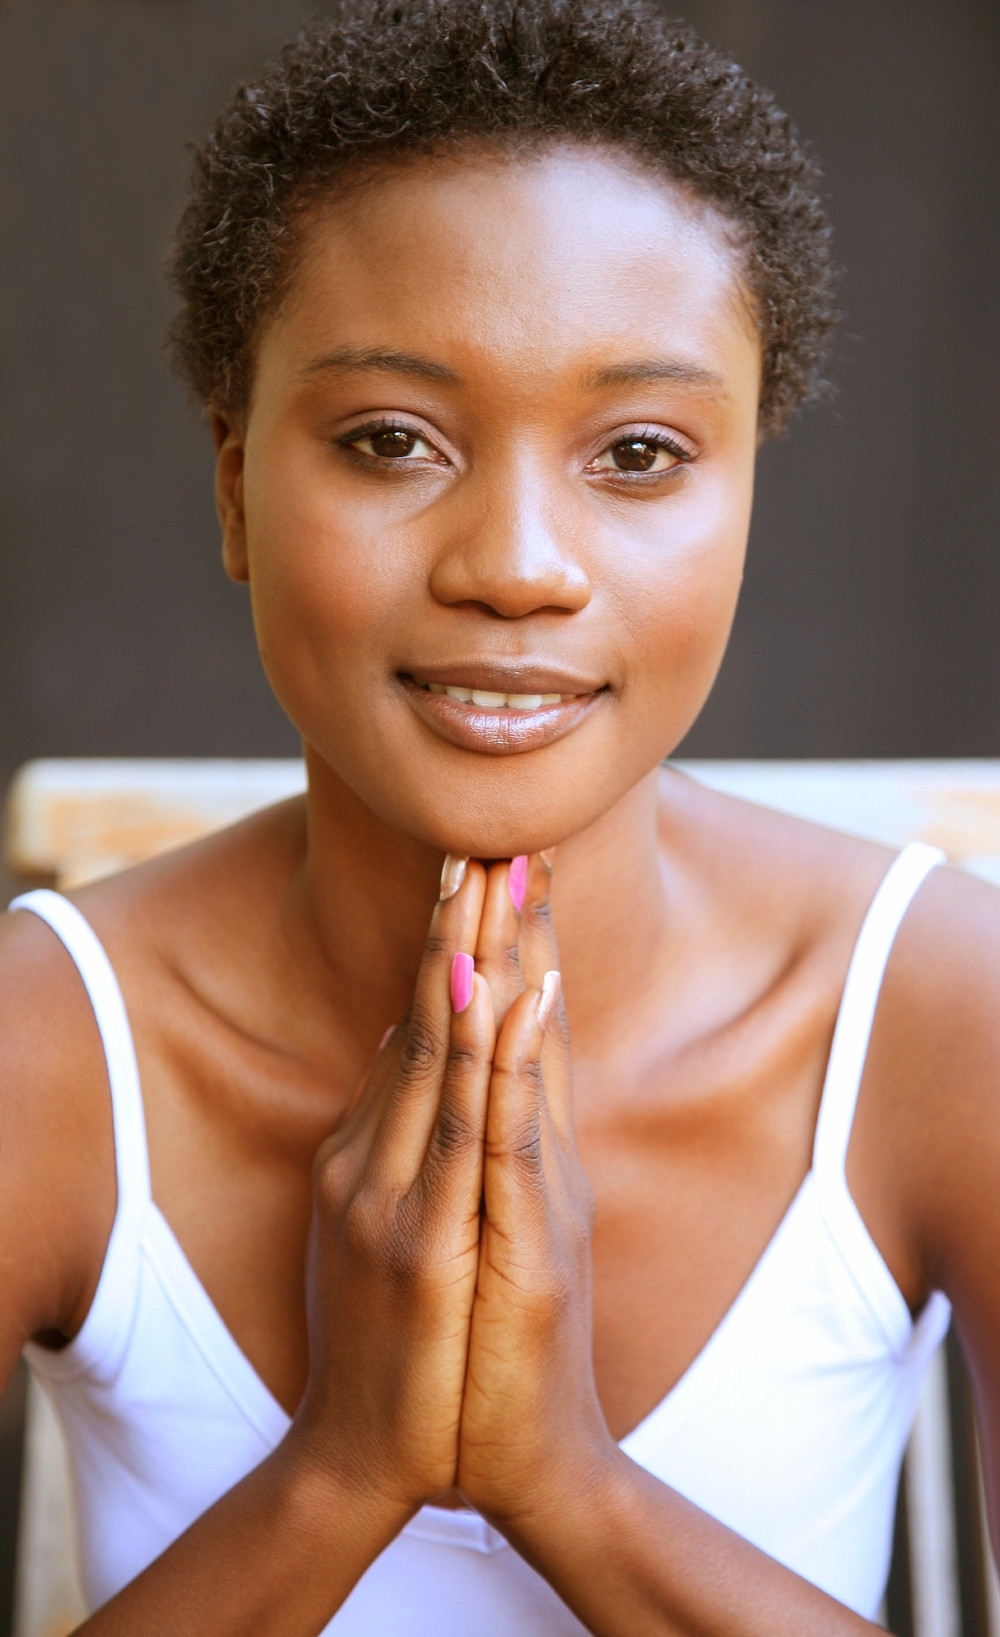 A young black woman, with closely cropped hair, looking serene, and having the palms of her hands together, finger tips touching her chin.